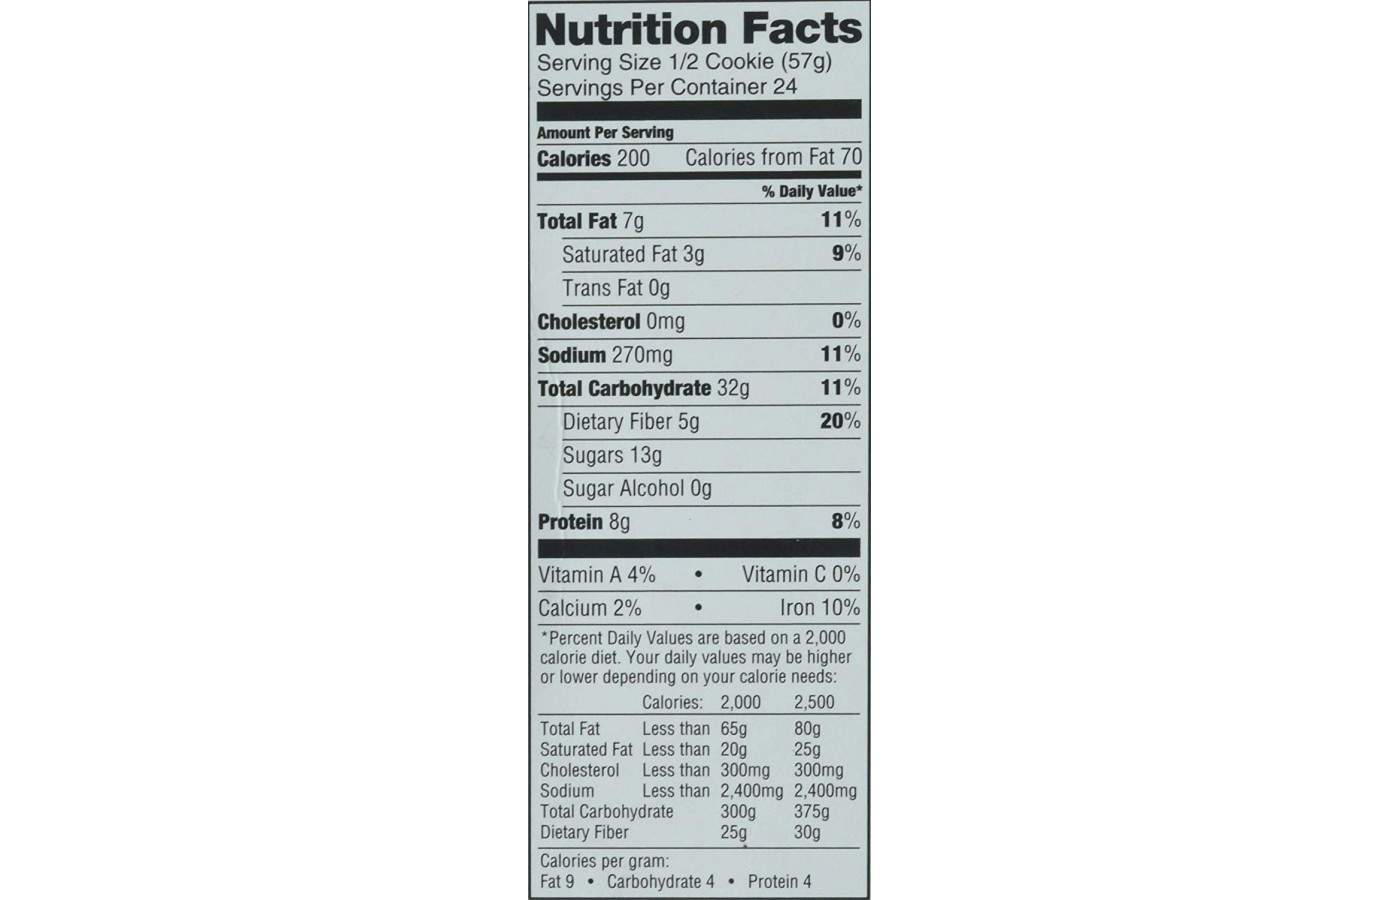 Complete Cookie 4oz nutrition facts